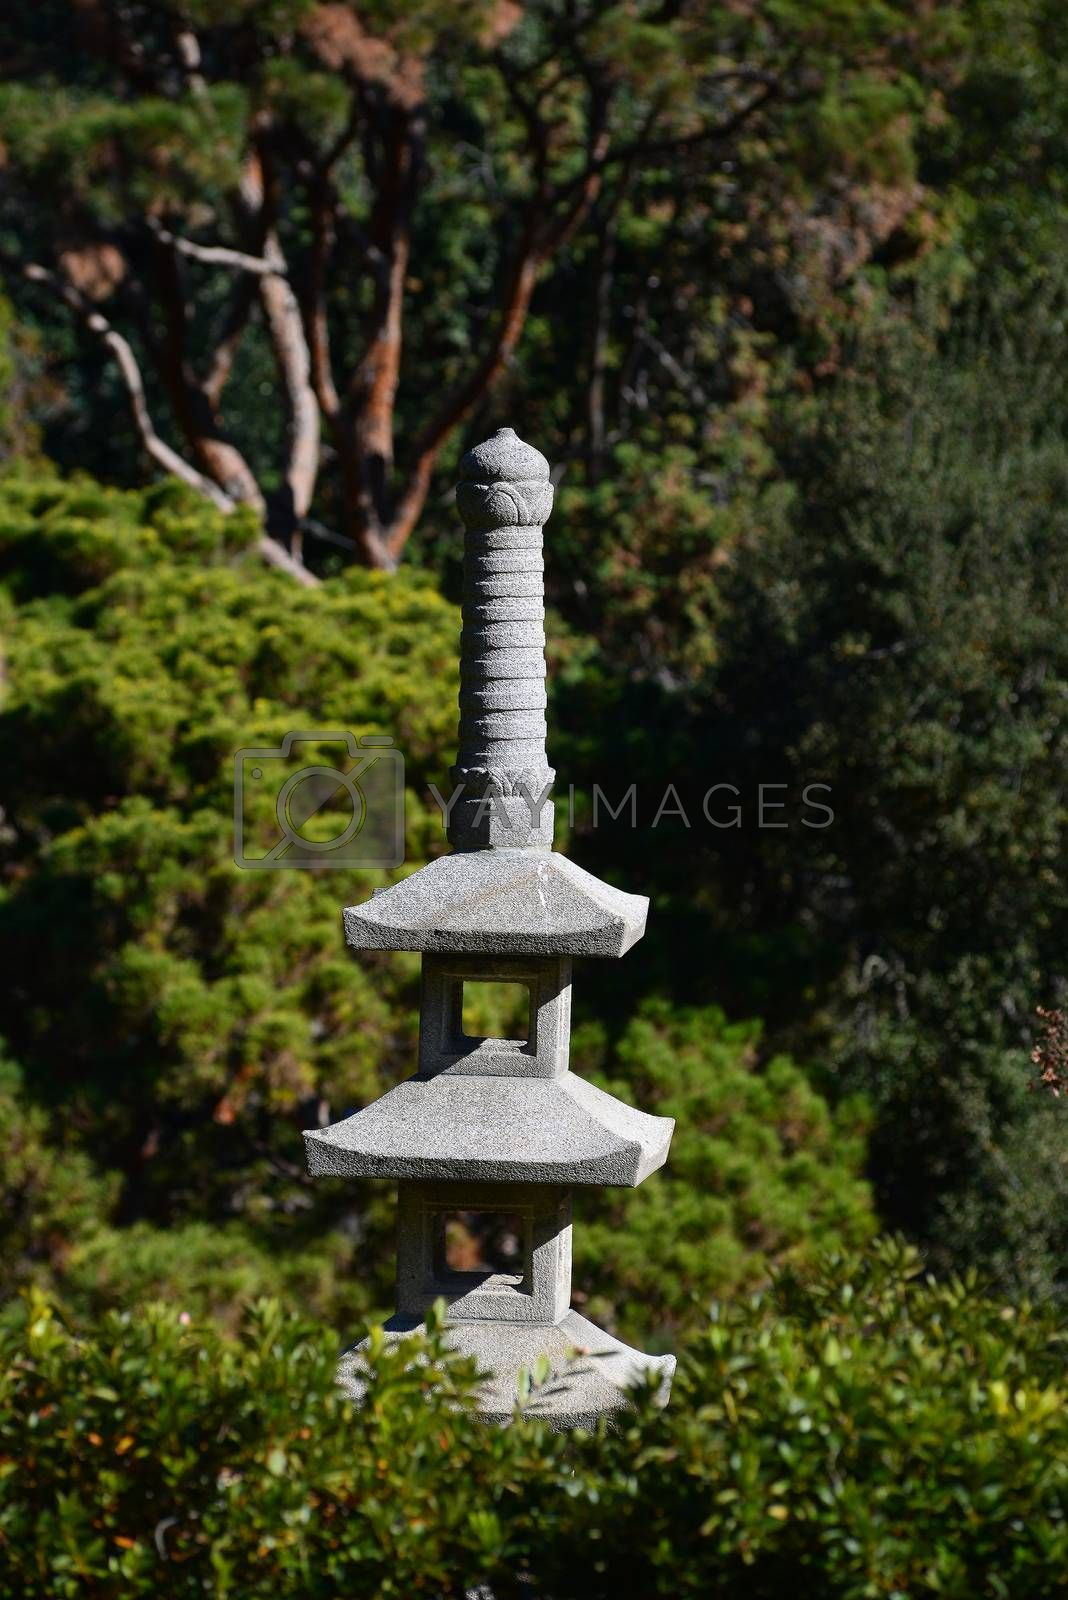 Royalty free image of japanese stone garden by porbital